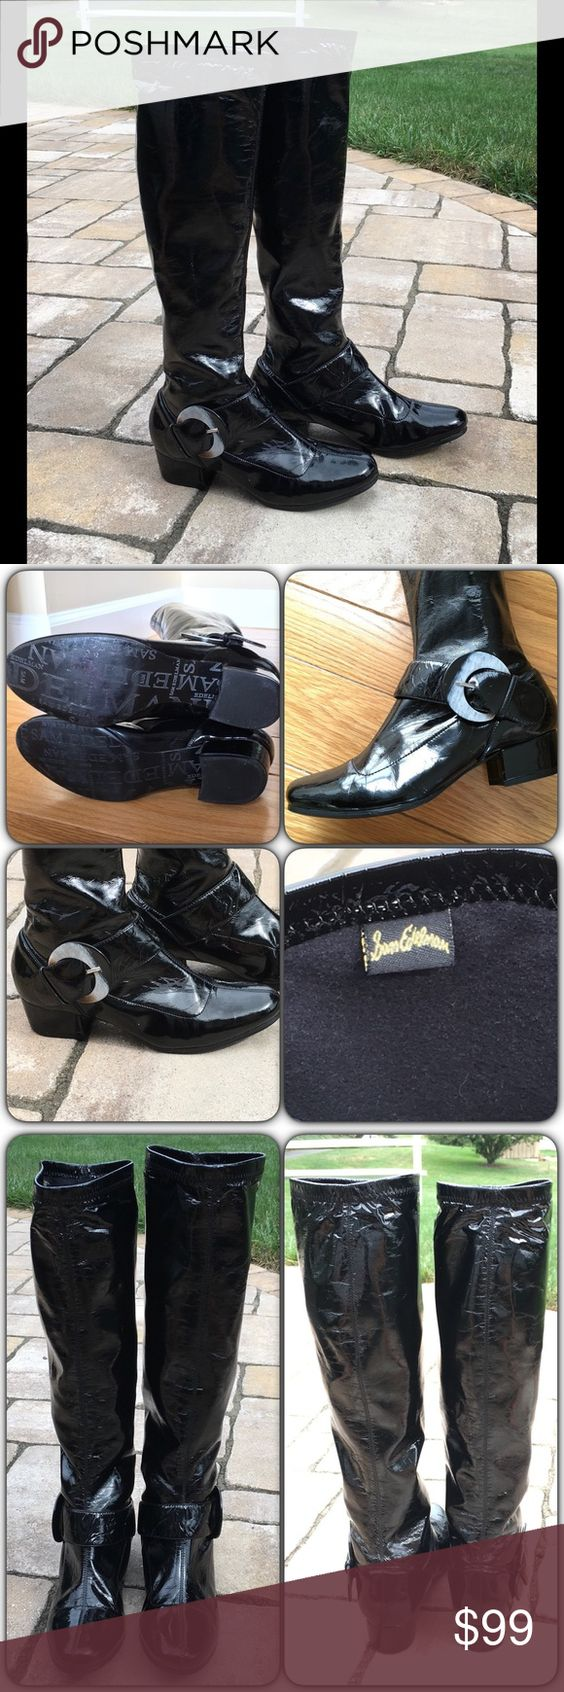 """Sam Edelman Boots Very good condition, black patent boots with shell-like beige-ish/cream and black buckle accents on each boot. Heel is b/w 1 1/4""""-1 1/2"""" high; shaft is about 16.5"""" and top circumference is about 13.5"""" around. Very minor/small scuff on back of left heel which has been filled in with black shoe polish. These are pull on boots (no zipper) with a bit of stretch in material. Sam Edelman Shoes Heeled Boots"""